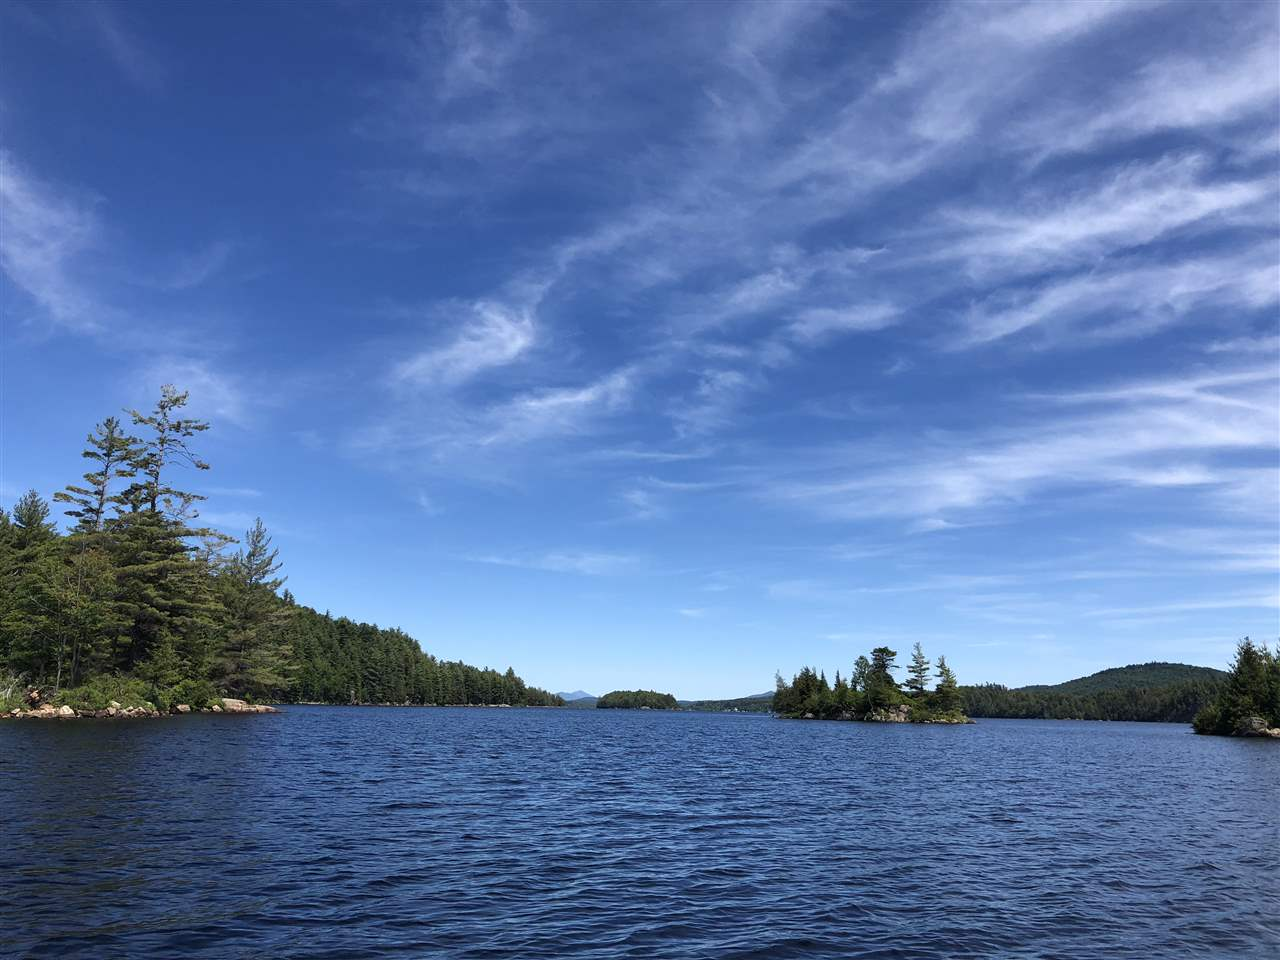 Tupper Lake image 1